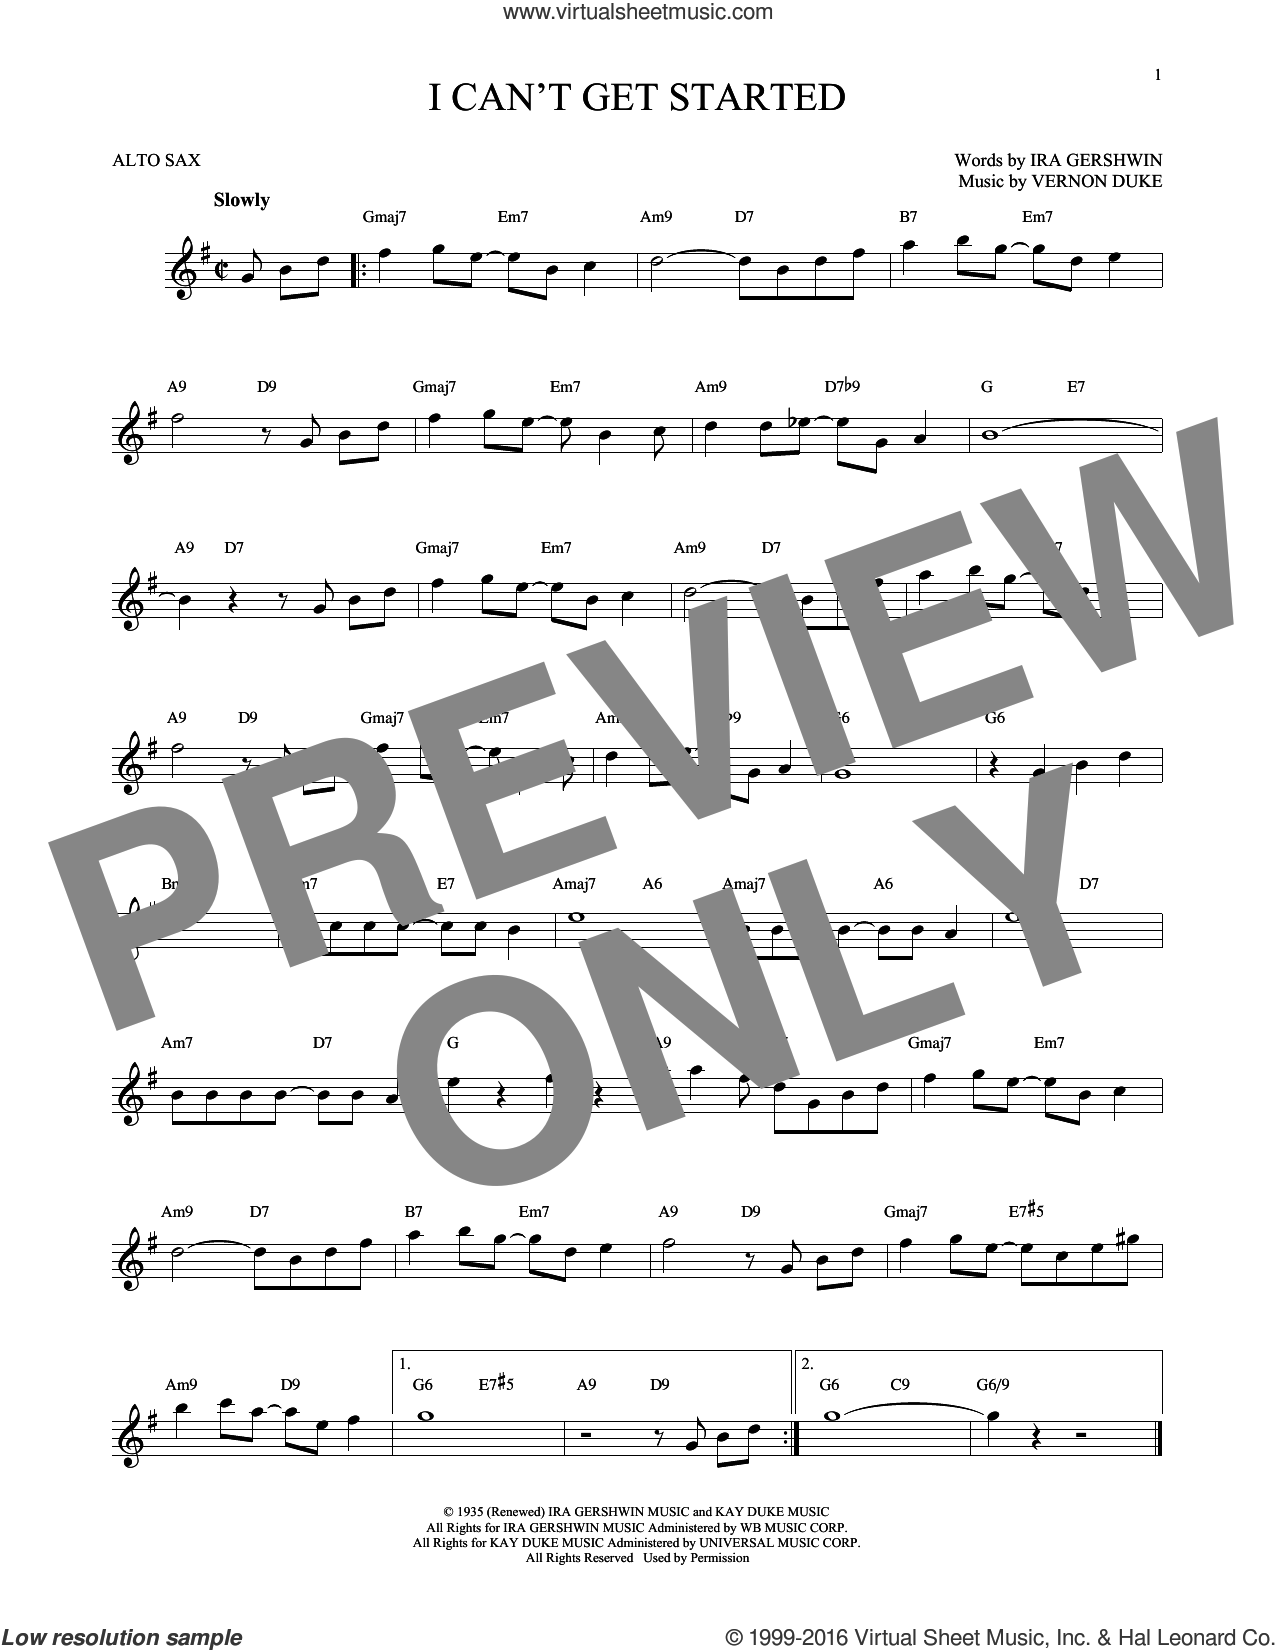 I Can't Get Started sheet music for alto saxophone solo by Vernon Duke and Ira Gershwin. Score Image Preview.